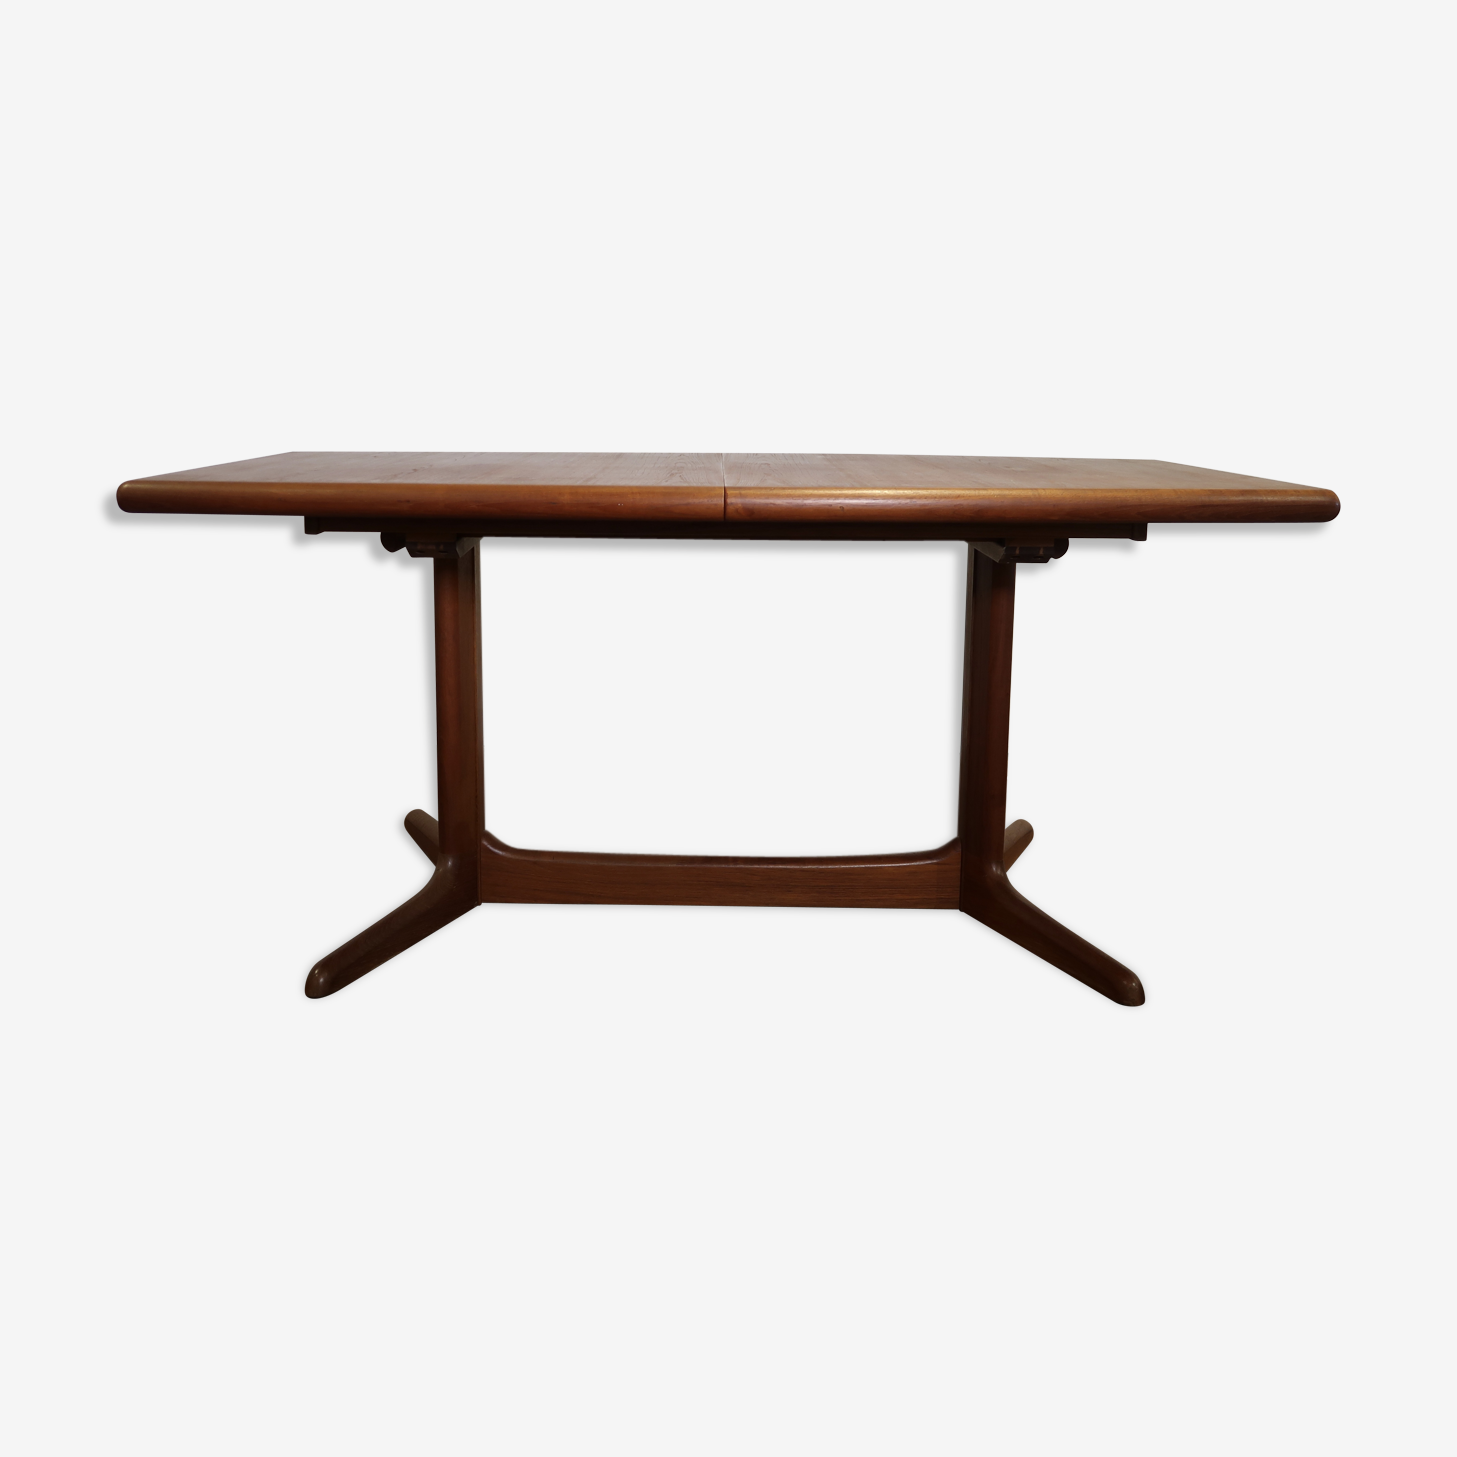 Table dining teak with extensions, Denmark 1960's